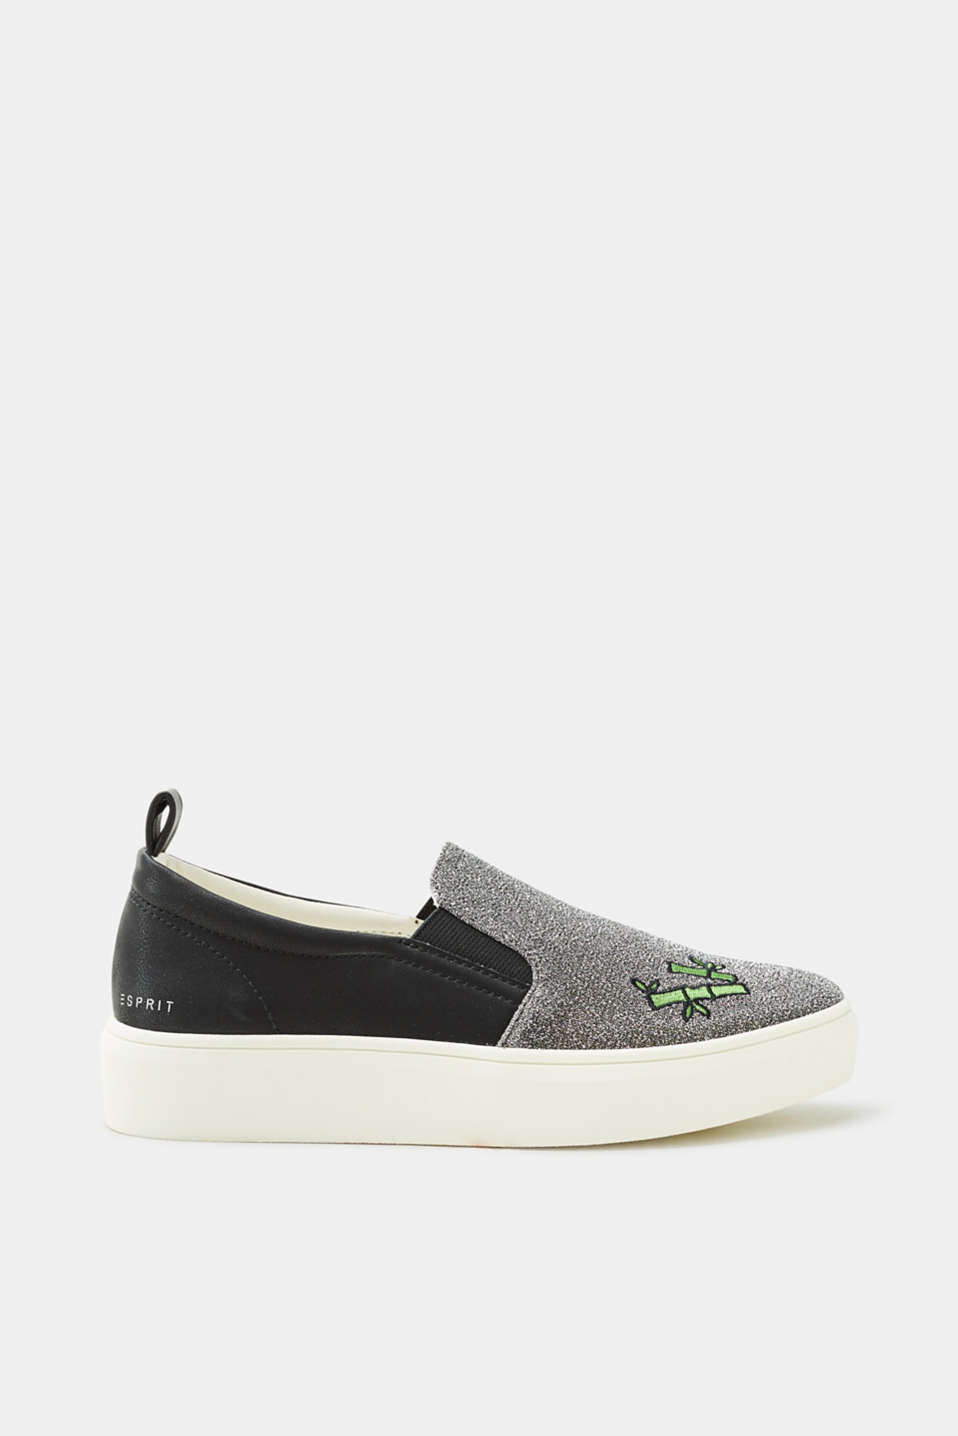 Esprit - Slip-on trainers with glitter and a panda appliqué